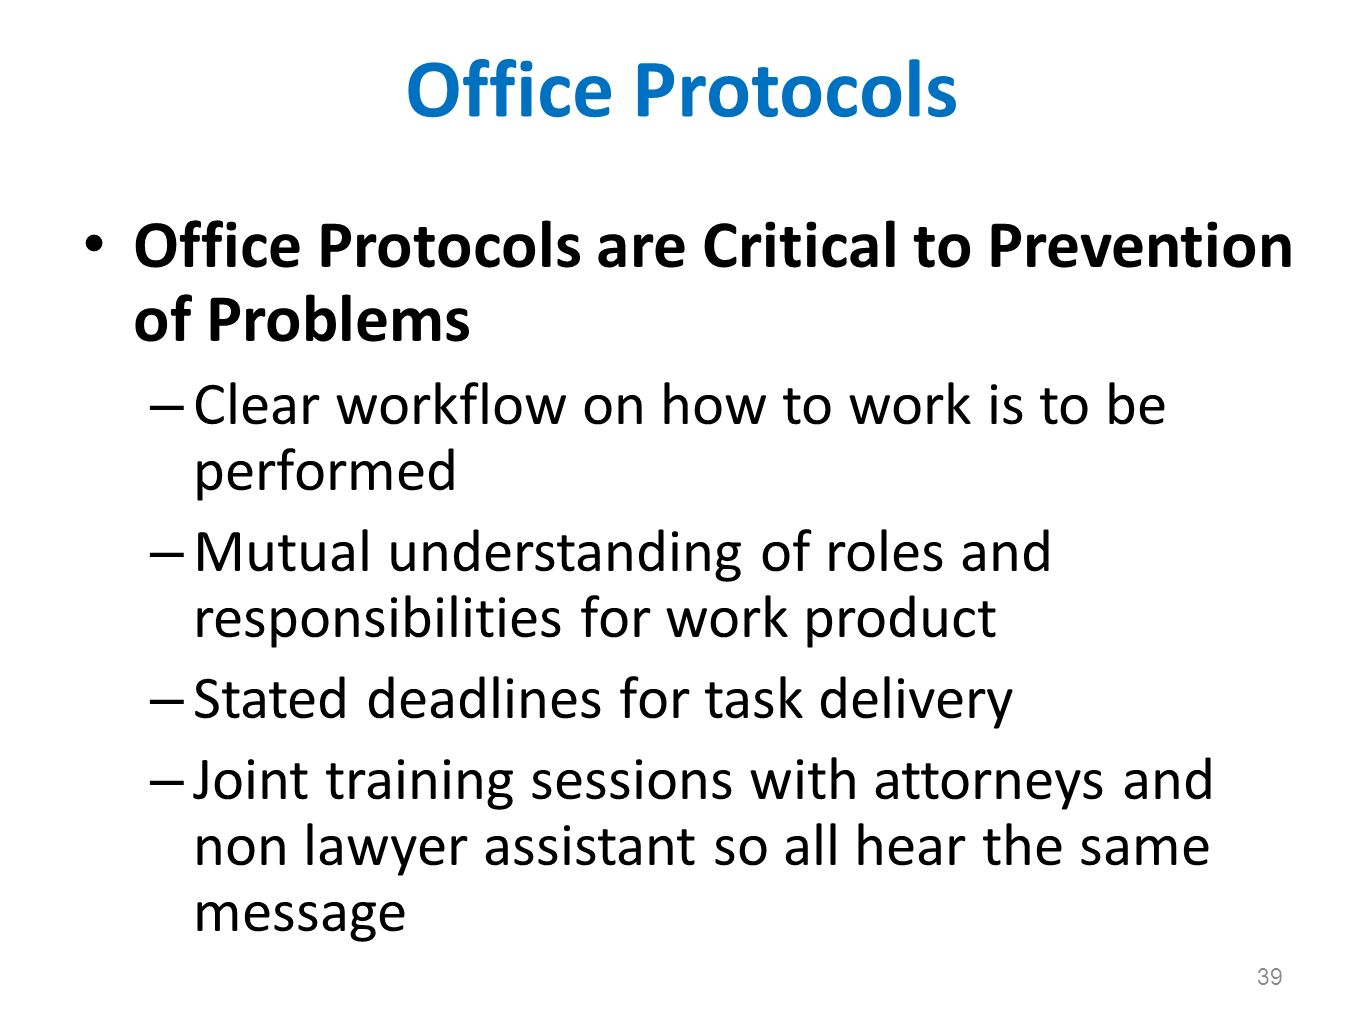 Office Protocols Office Protocols are Critical to Prevention of Problems. Clear workflow on how to work is to be performed.